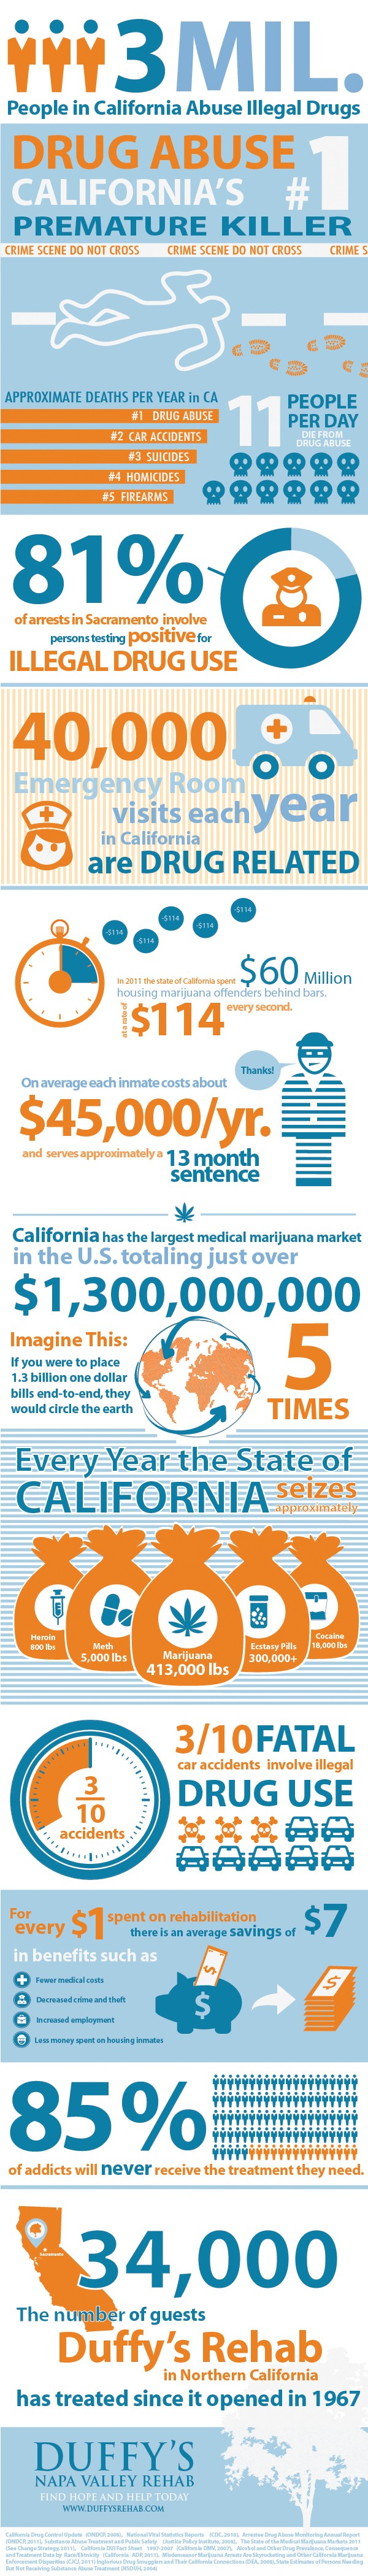 california-drug-abuse-statistics_50b905e4324ac